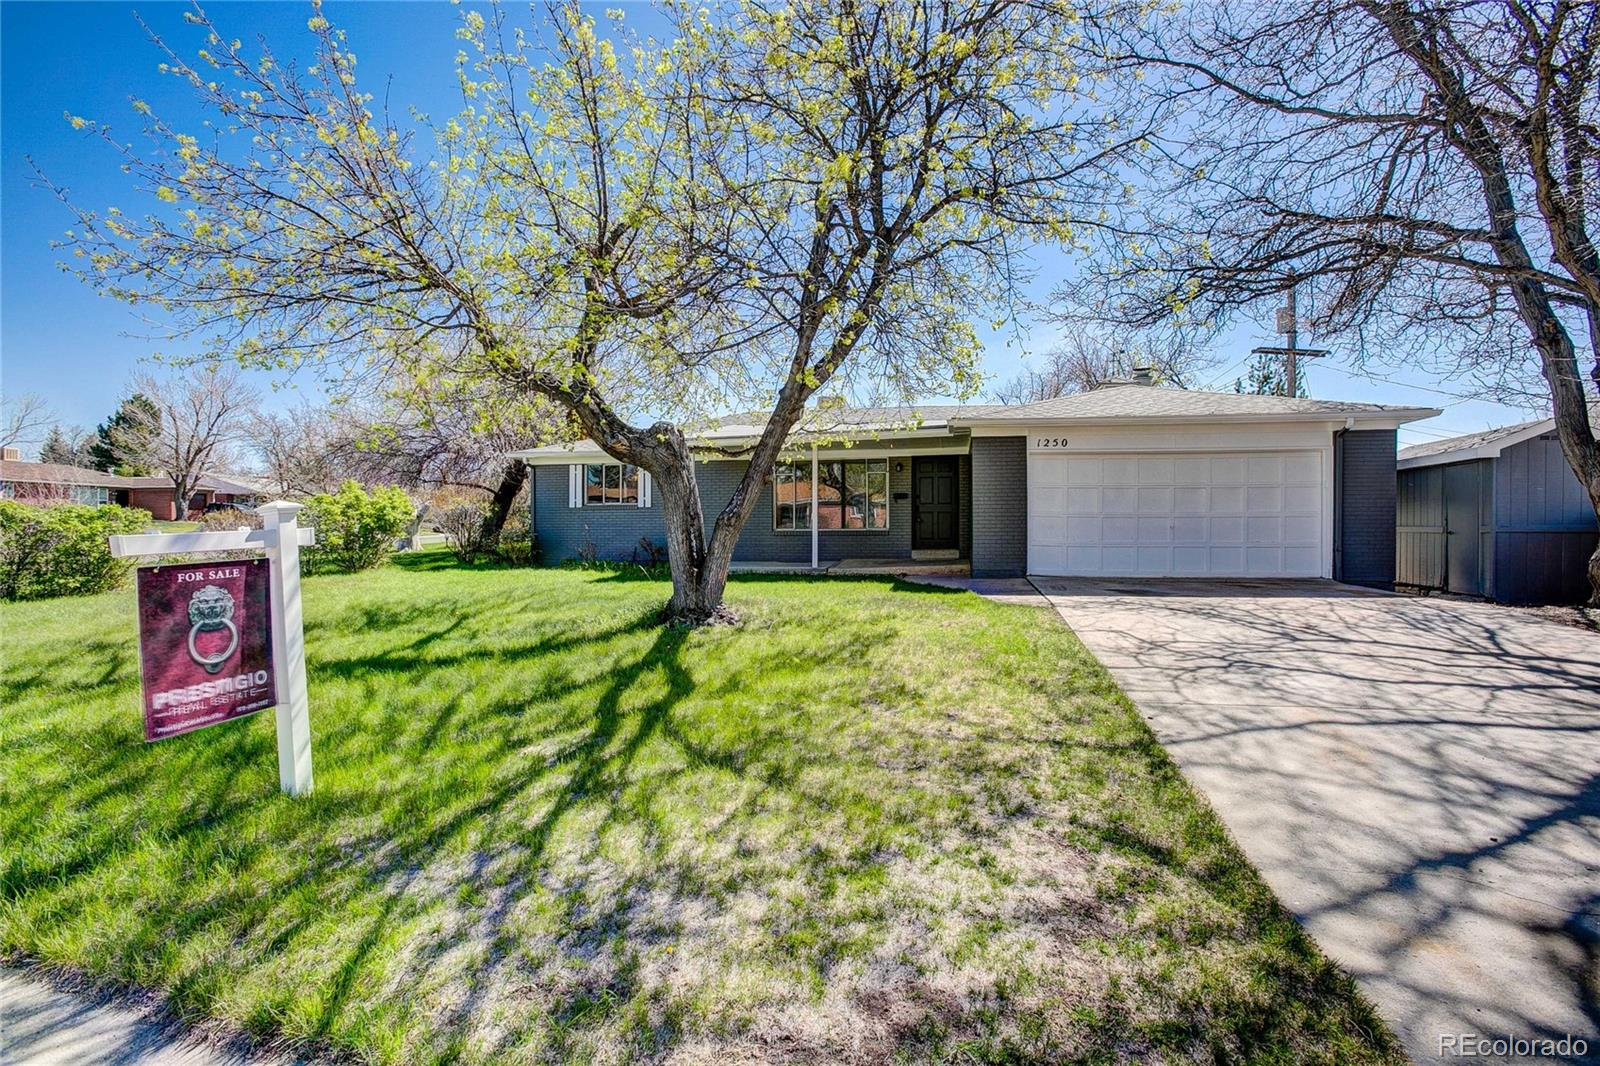 MLS# 9710462 - 37 - 1250 W 7th Ave Dr, Broomfield, CO 80020